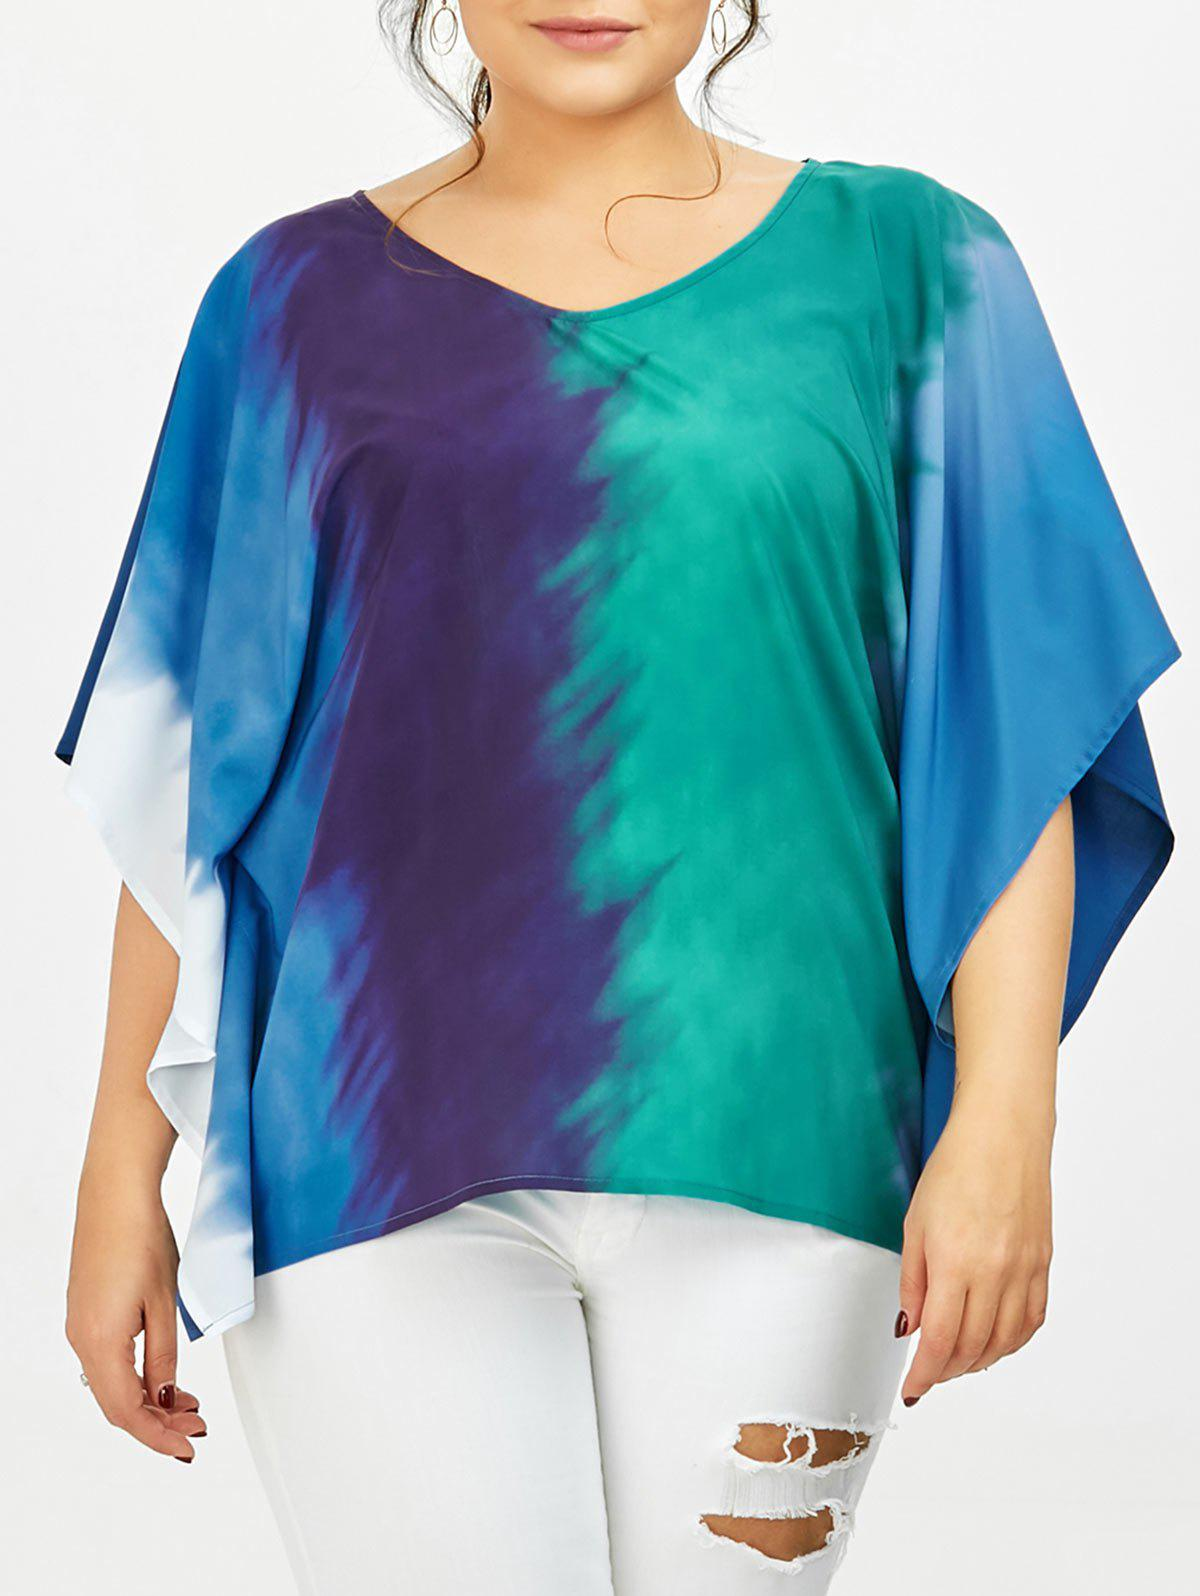 Plus Size Tie Dye Butterfly Sleeve T-Shirt pm25lv010 25lv010 sop 8